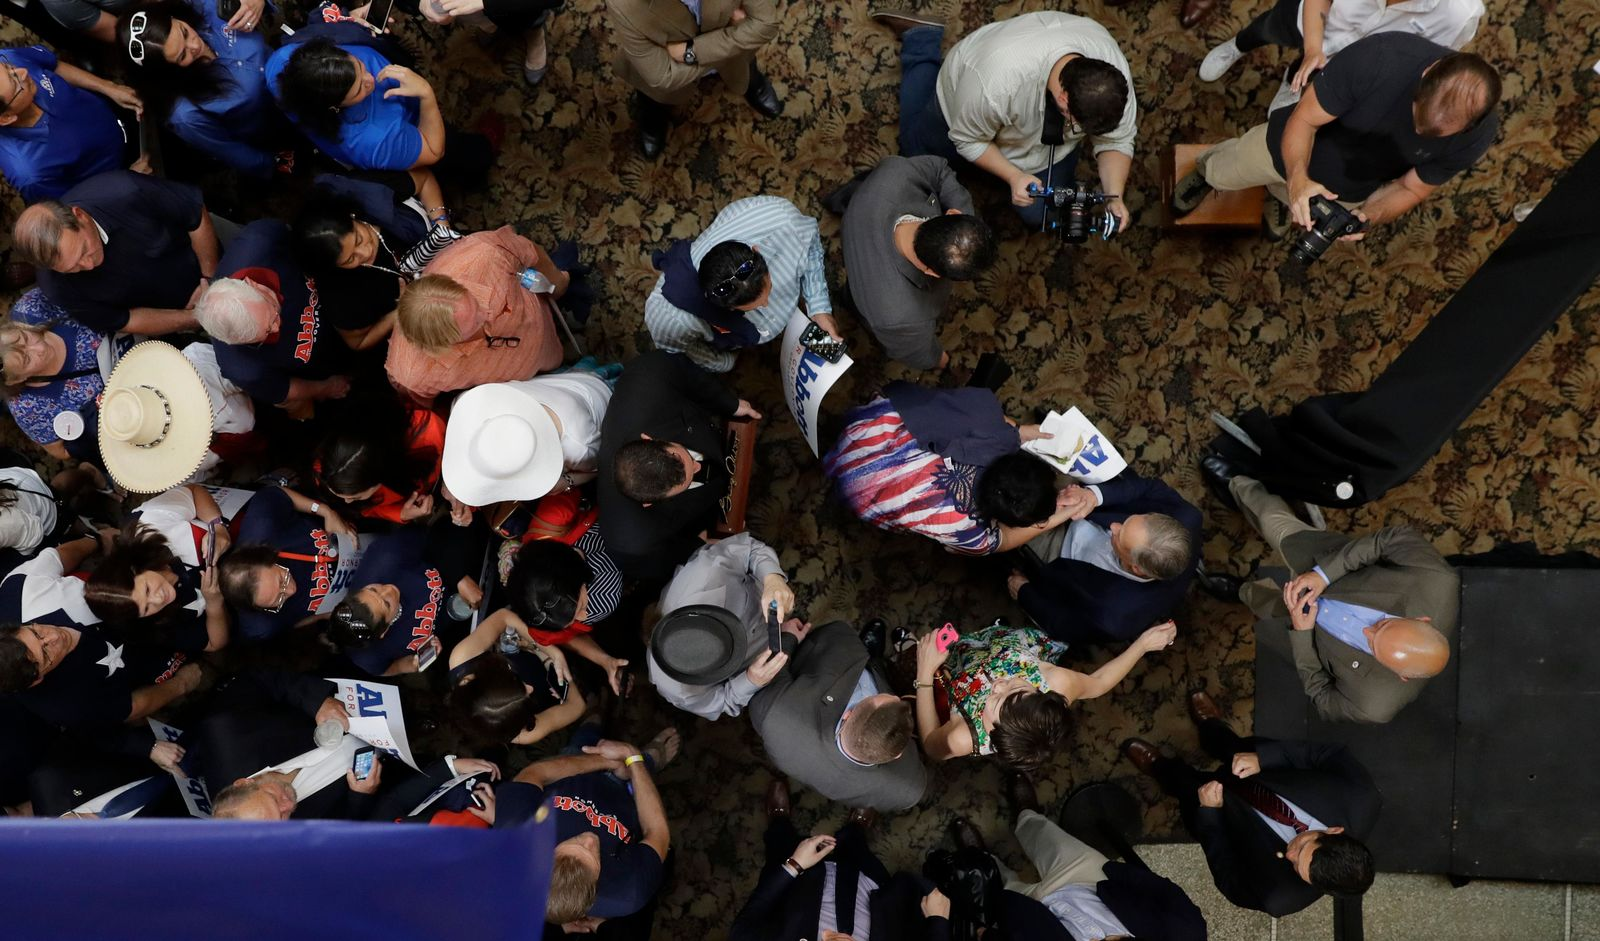 Texas Gov. Greg Abbott, right center, greets supporters during an event where he announced his bid for re-election, Friday, July 14, 2017, in San Antonio. (AP Photo/Eric Gay)